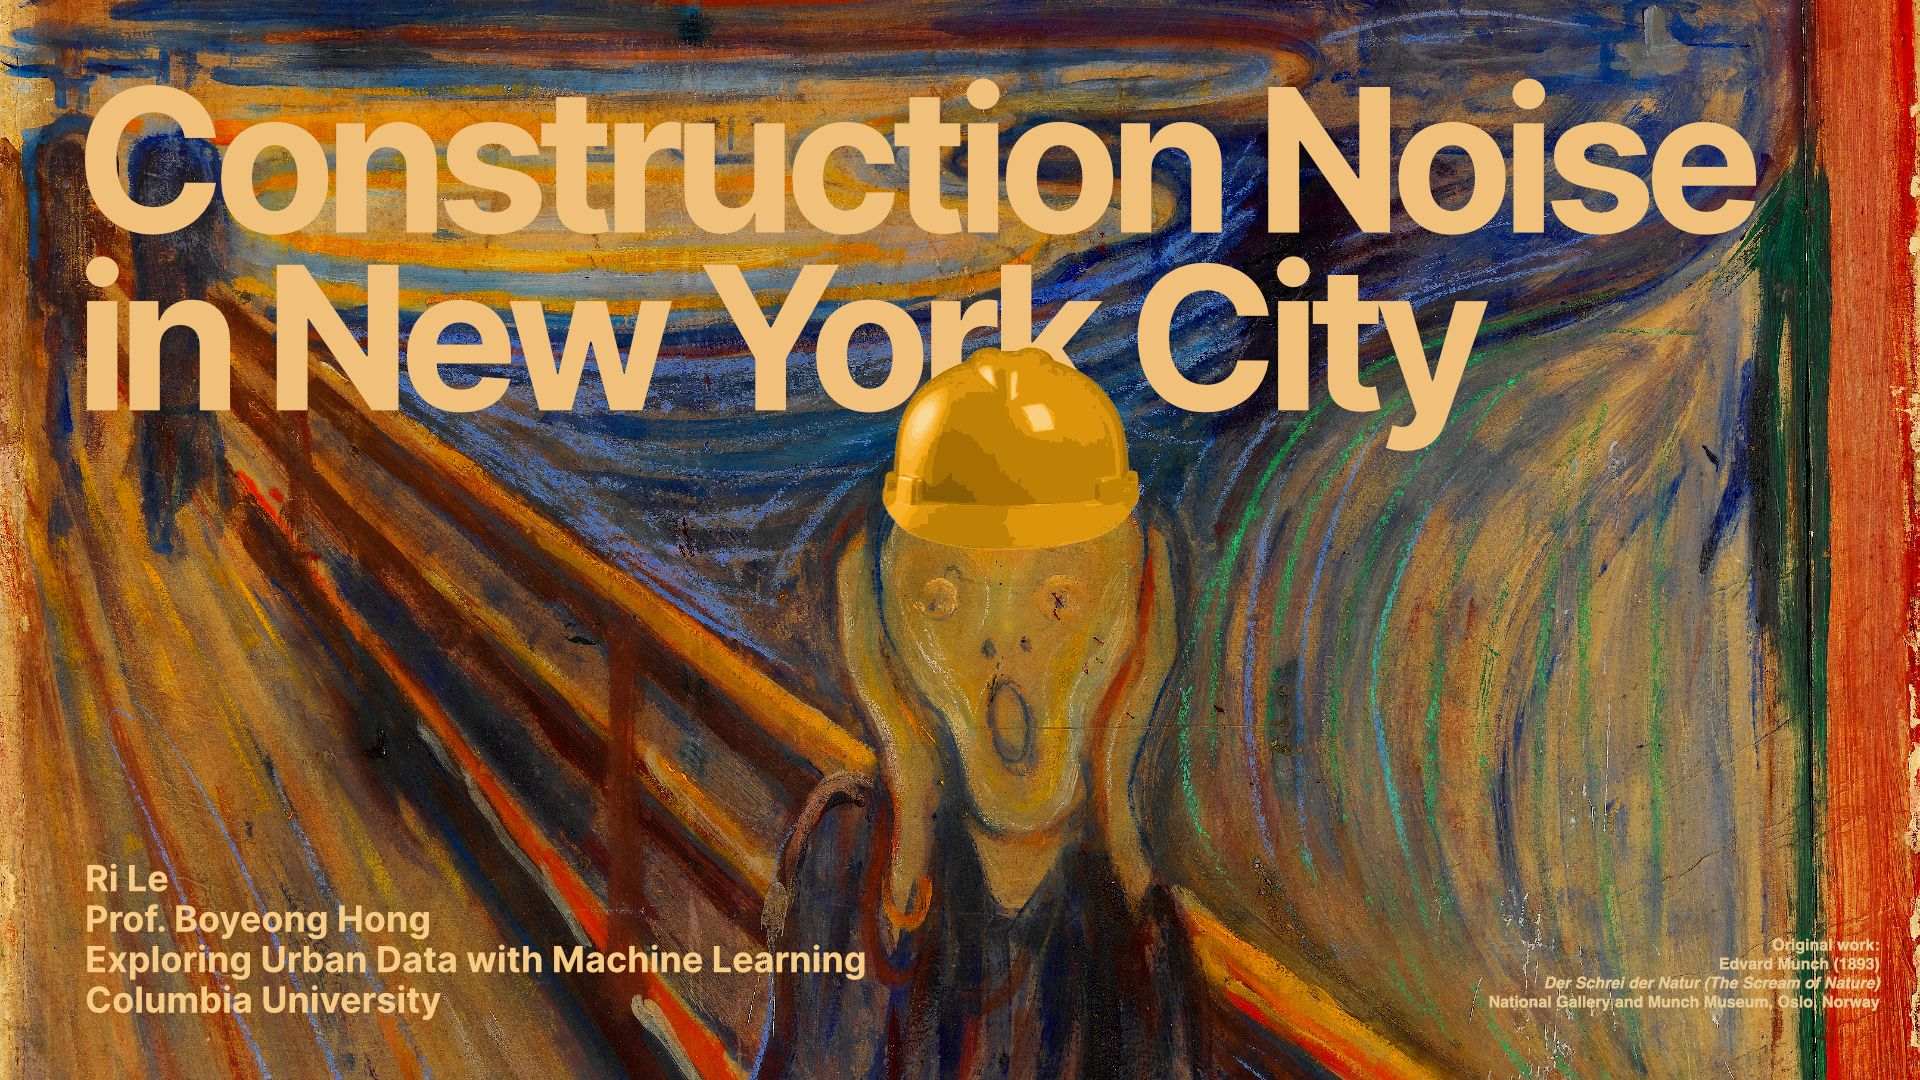 Analyzing Construction Noise in NYC